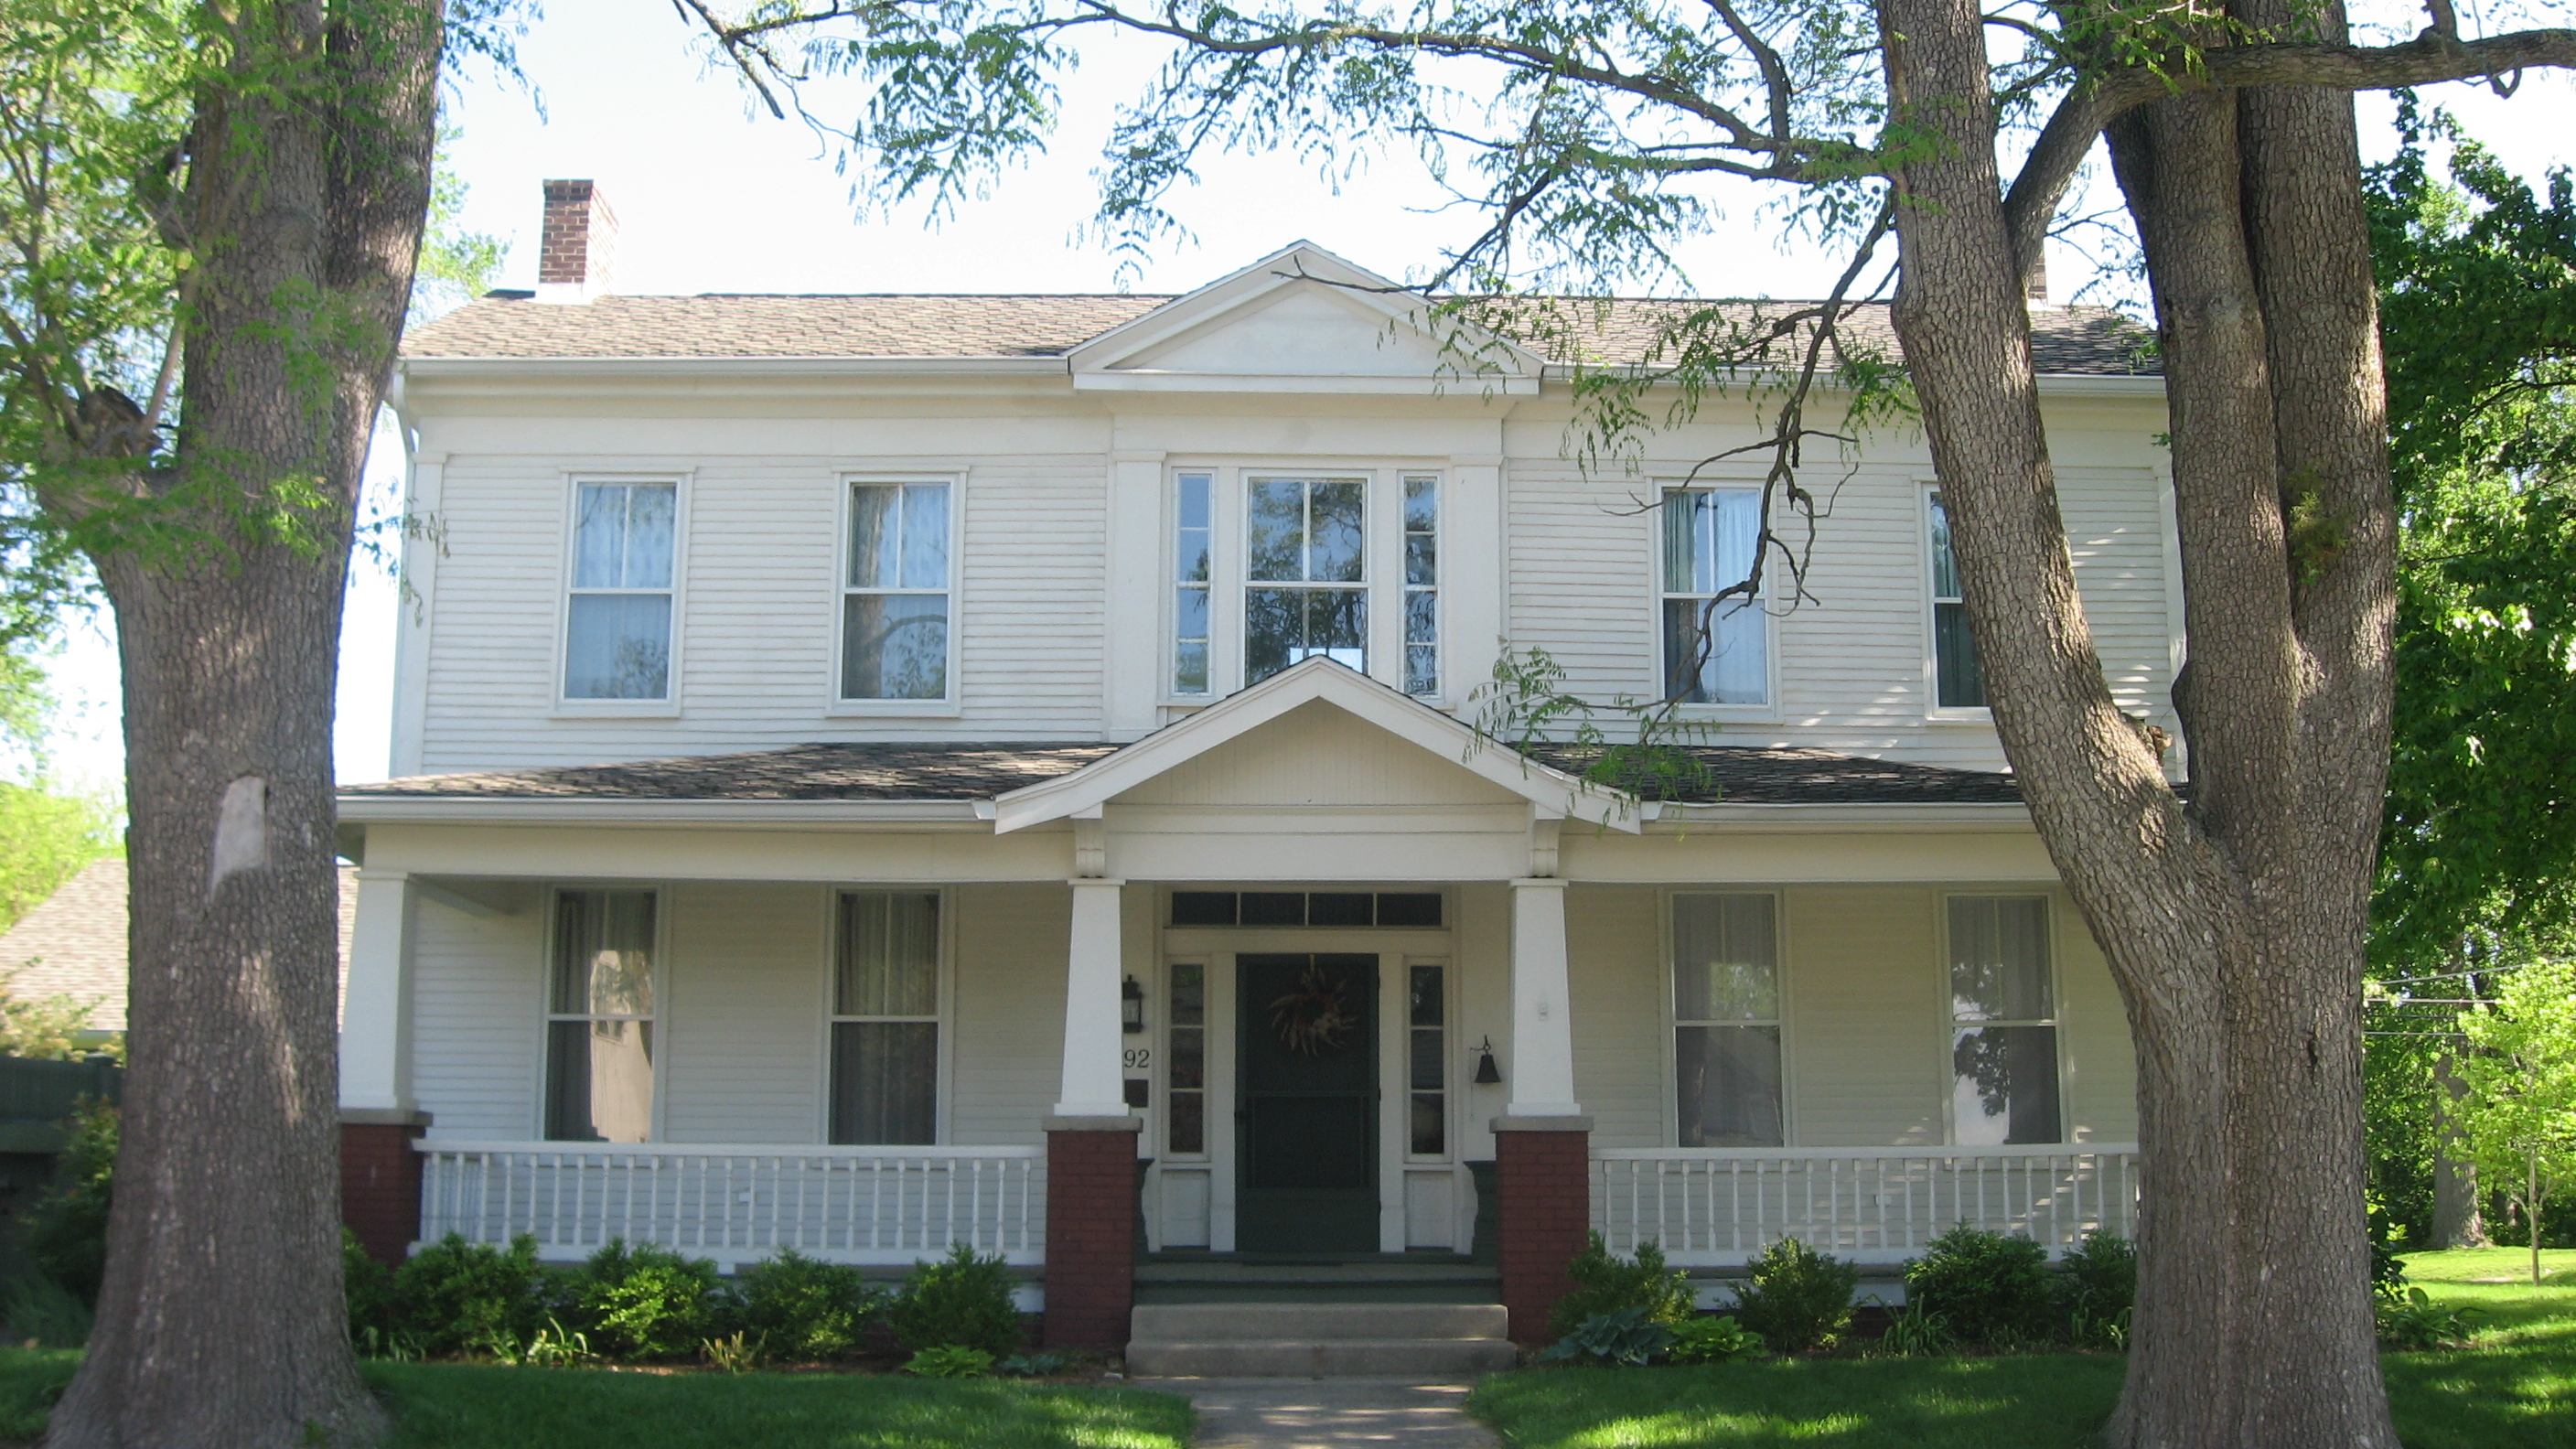 delightful jeremiah house #1: File:Dr. Jeremiah and Ann Jane DePew House.jpg